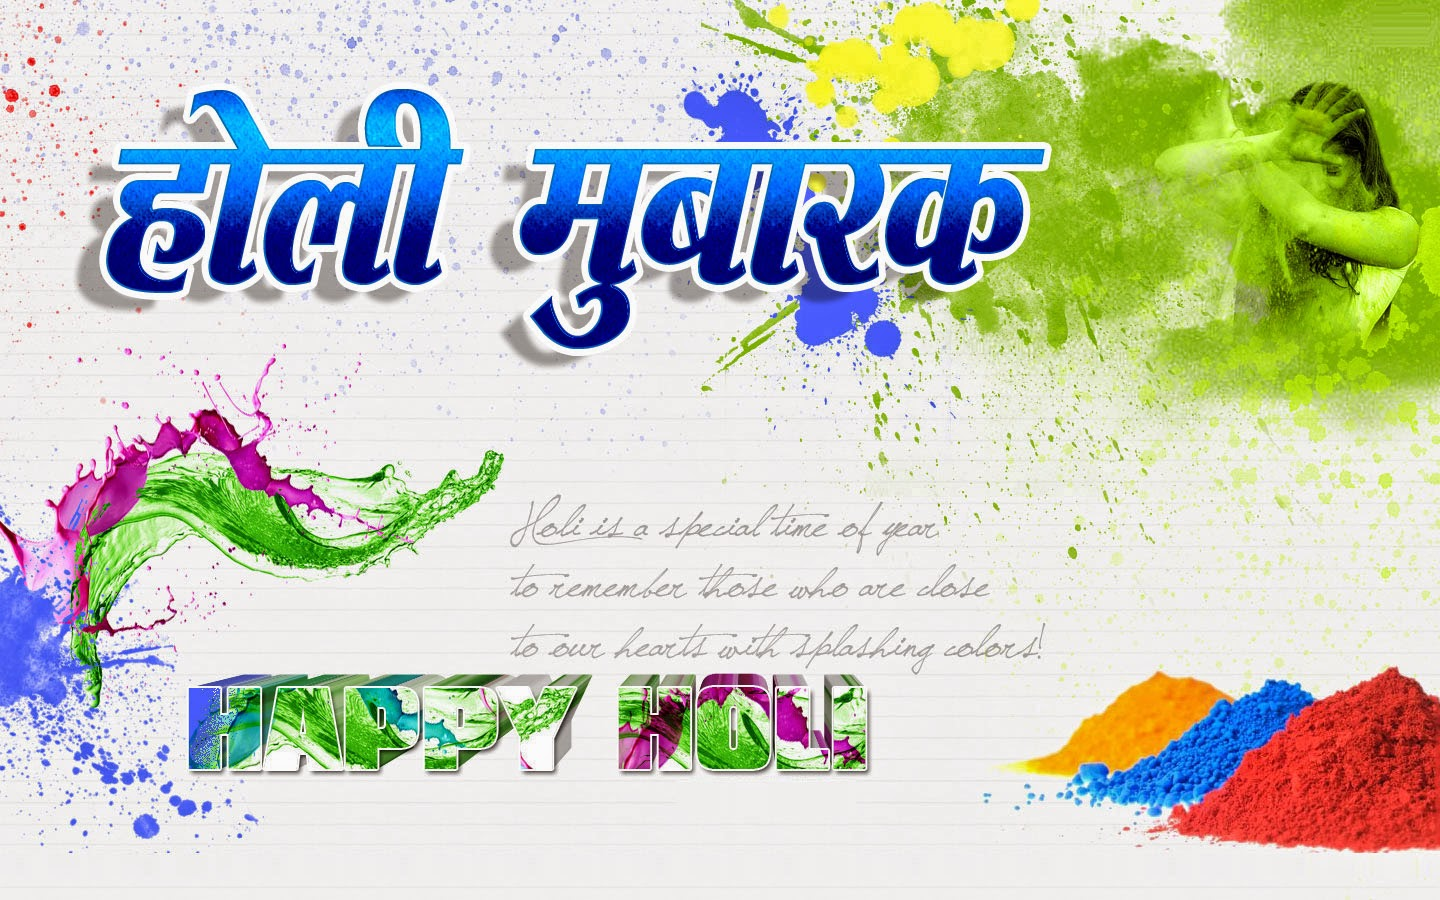 Latest Happy Holi 2018 Imagesgreetingspictureswall Papers And